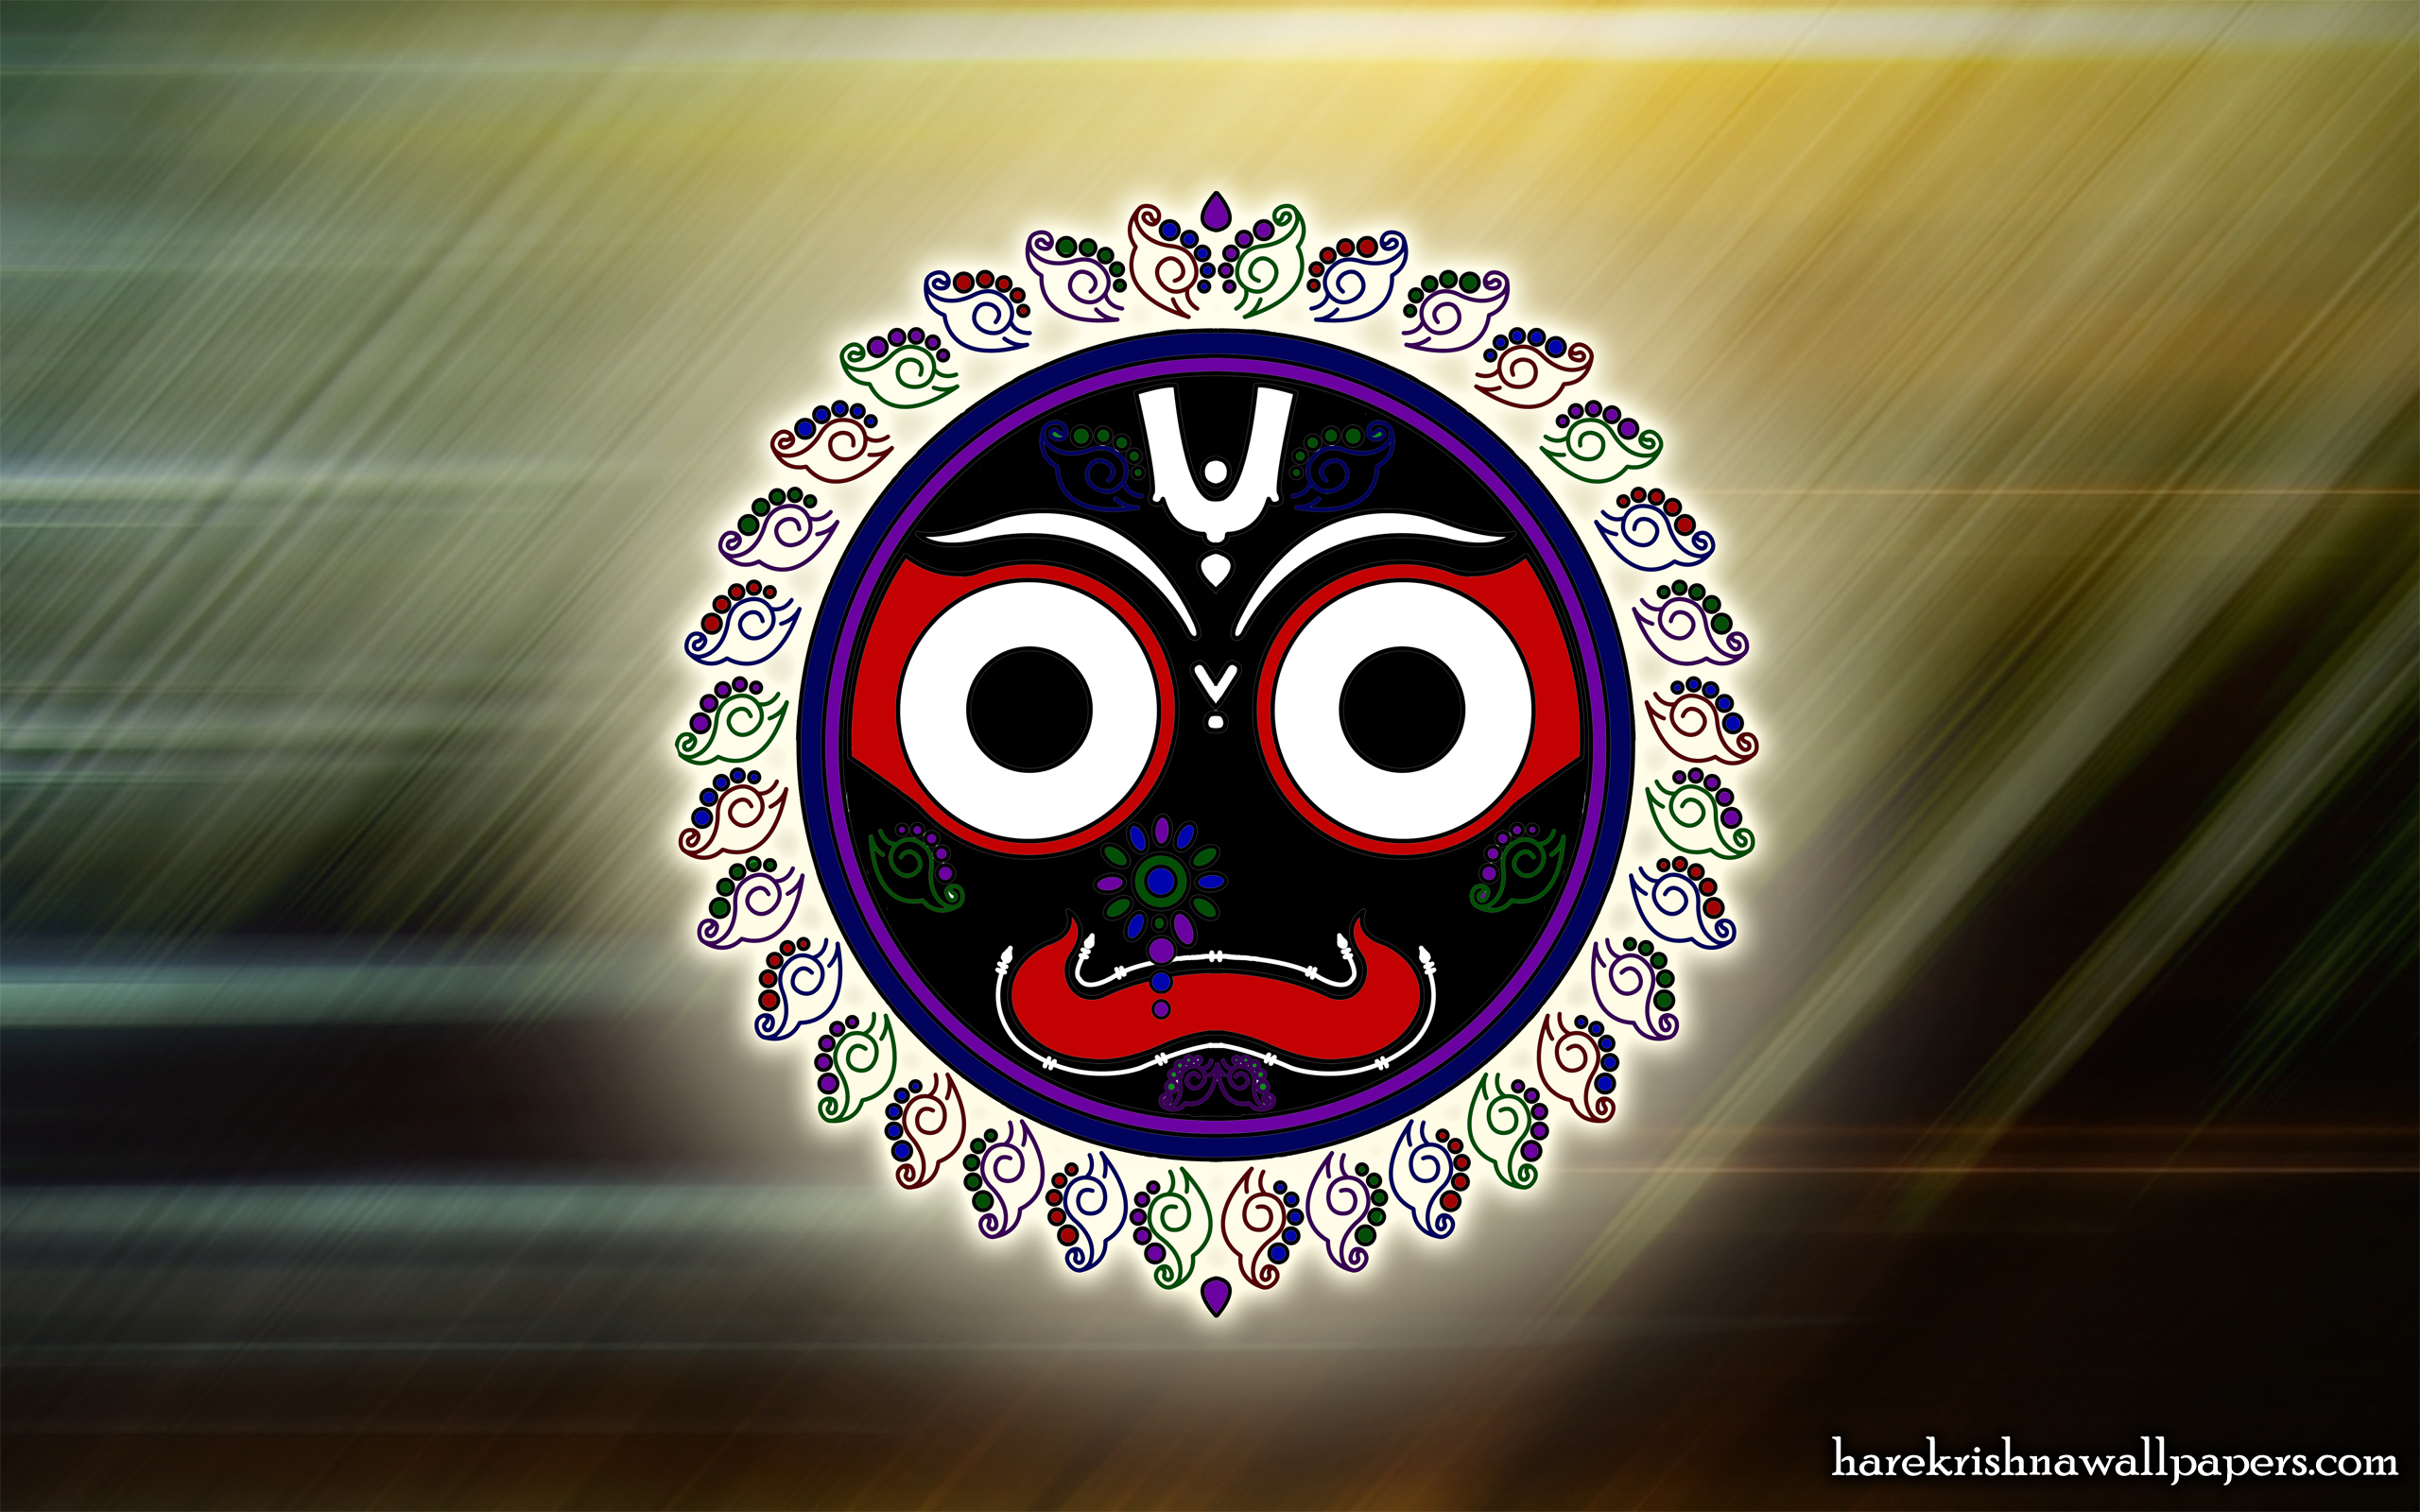 Jai Jagannath Wallpaper (037) Size 2560x1600 Download